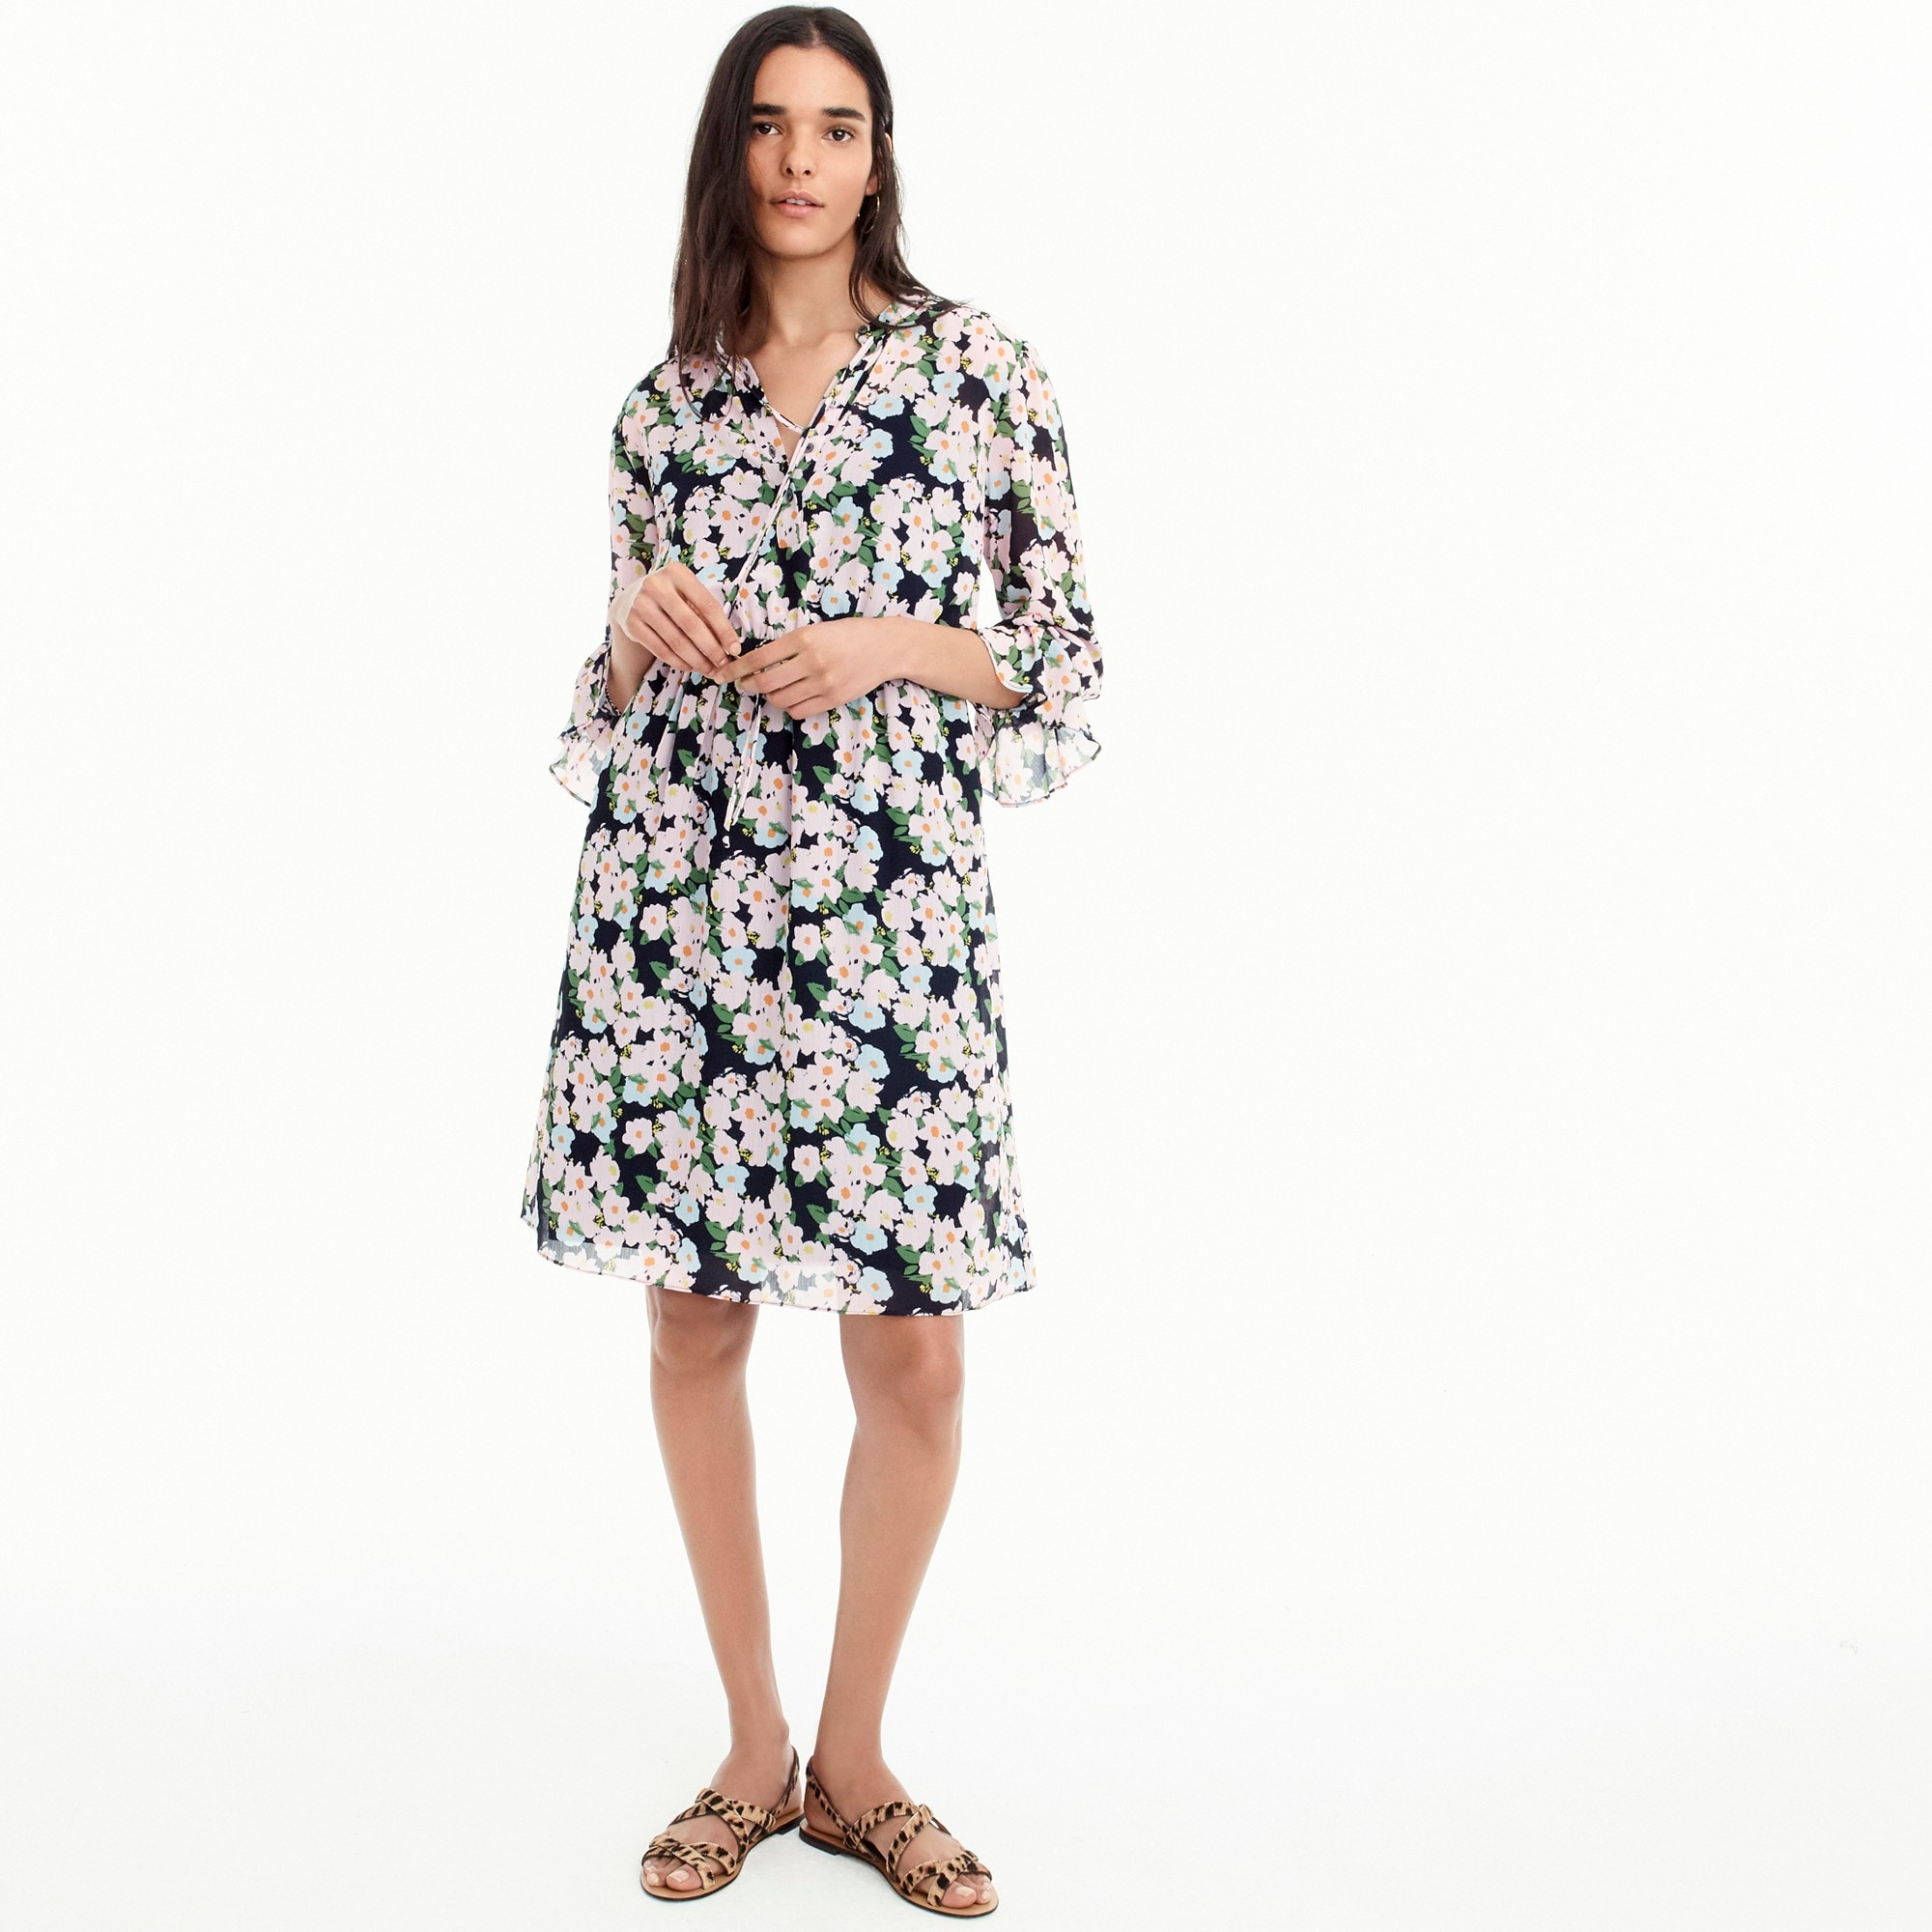 Image 2 for Petite J.Crew Mercantile drapey tie-front dress in French floral